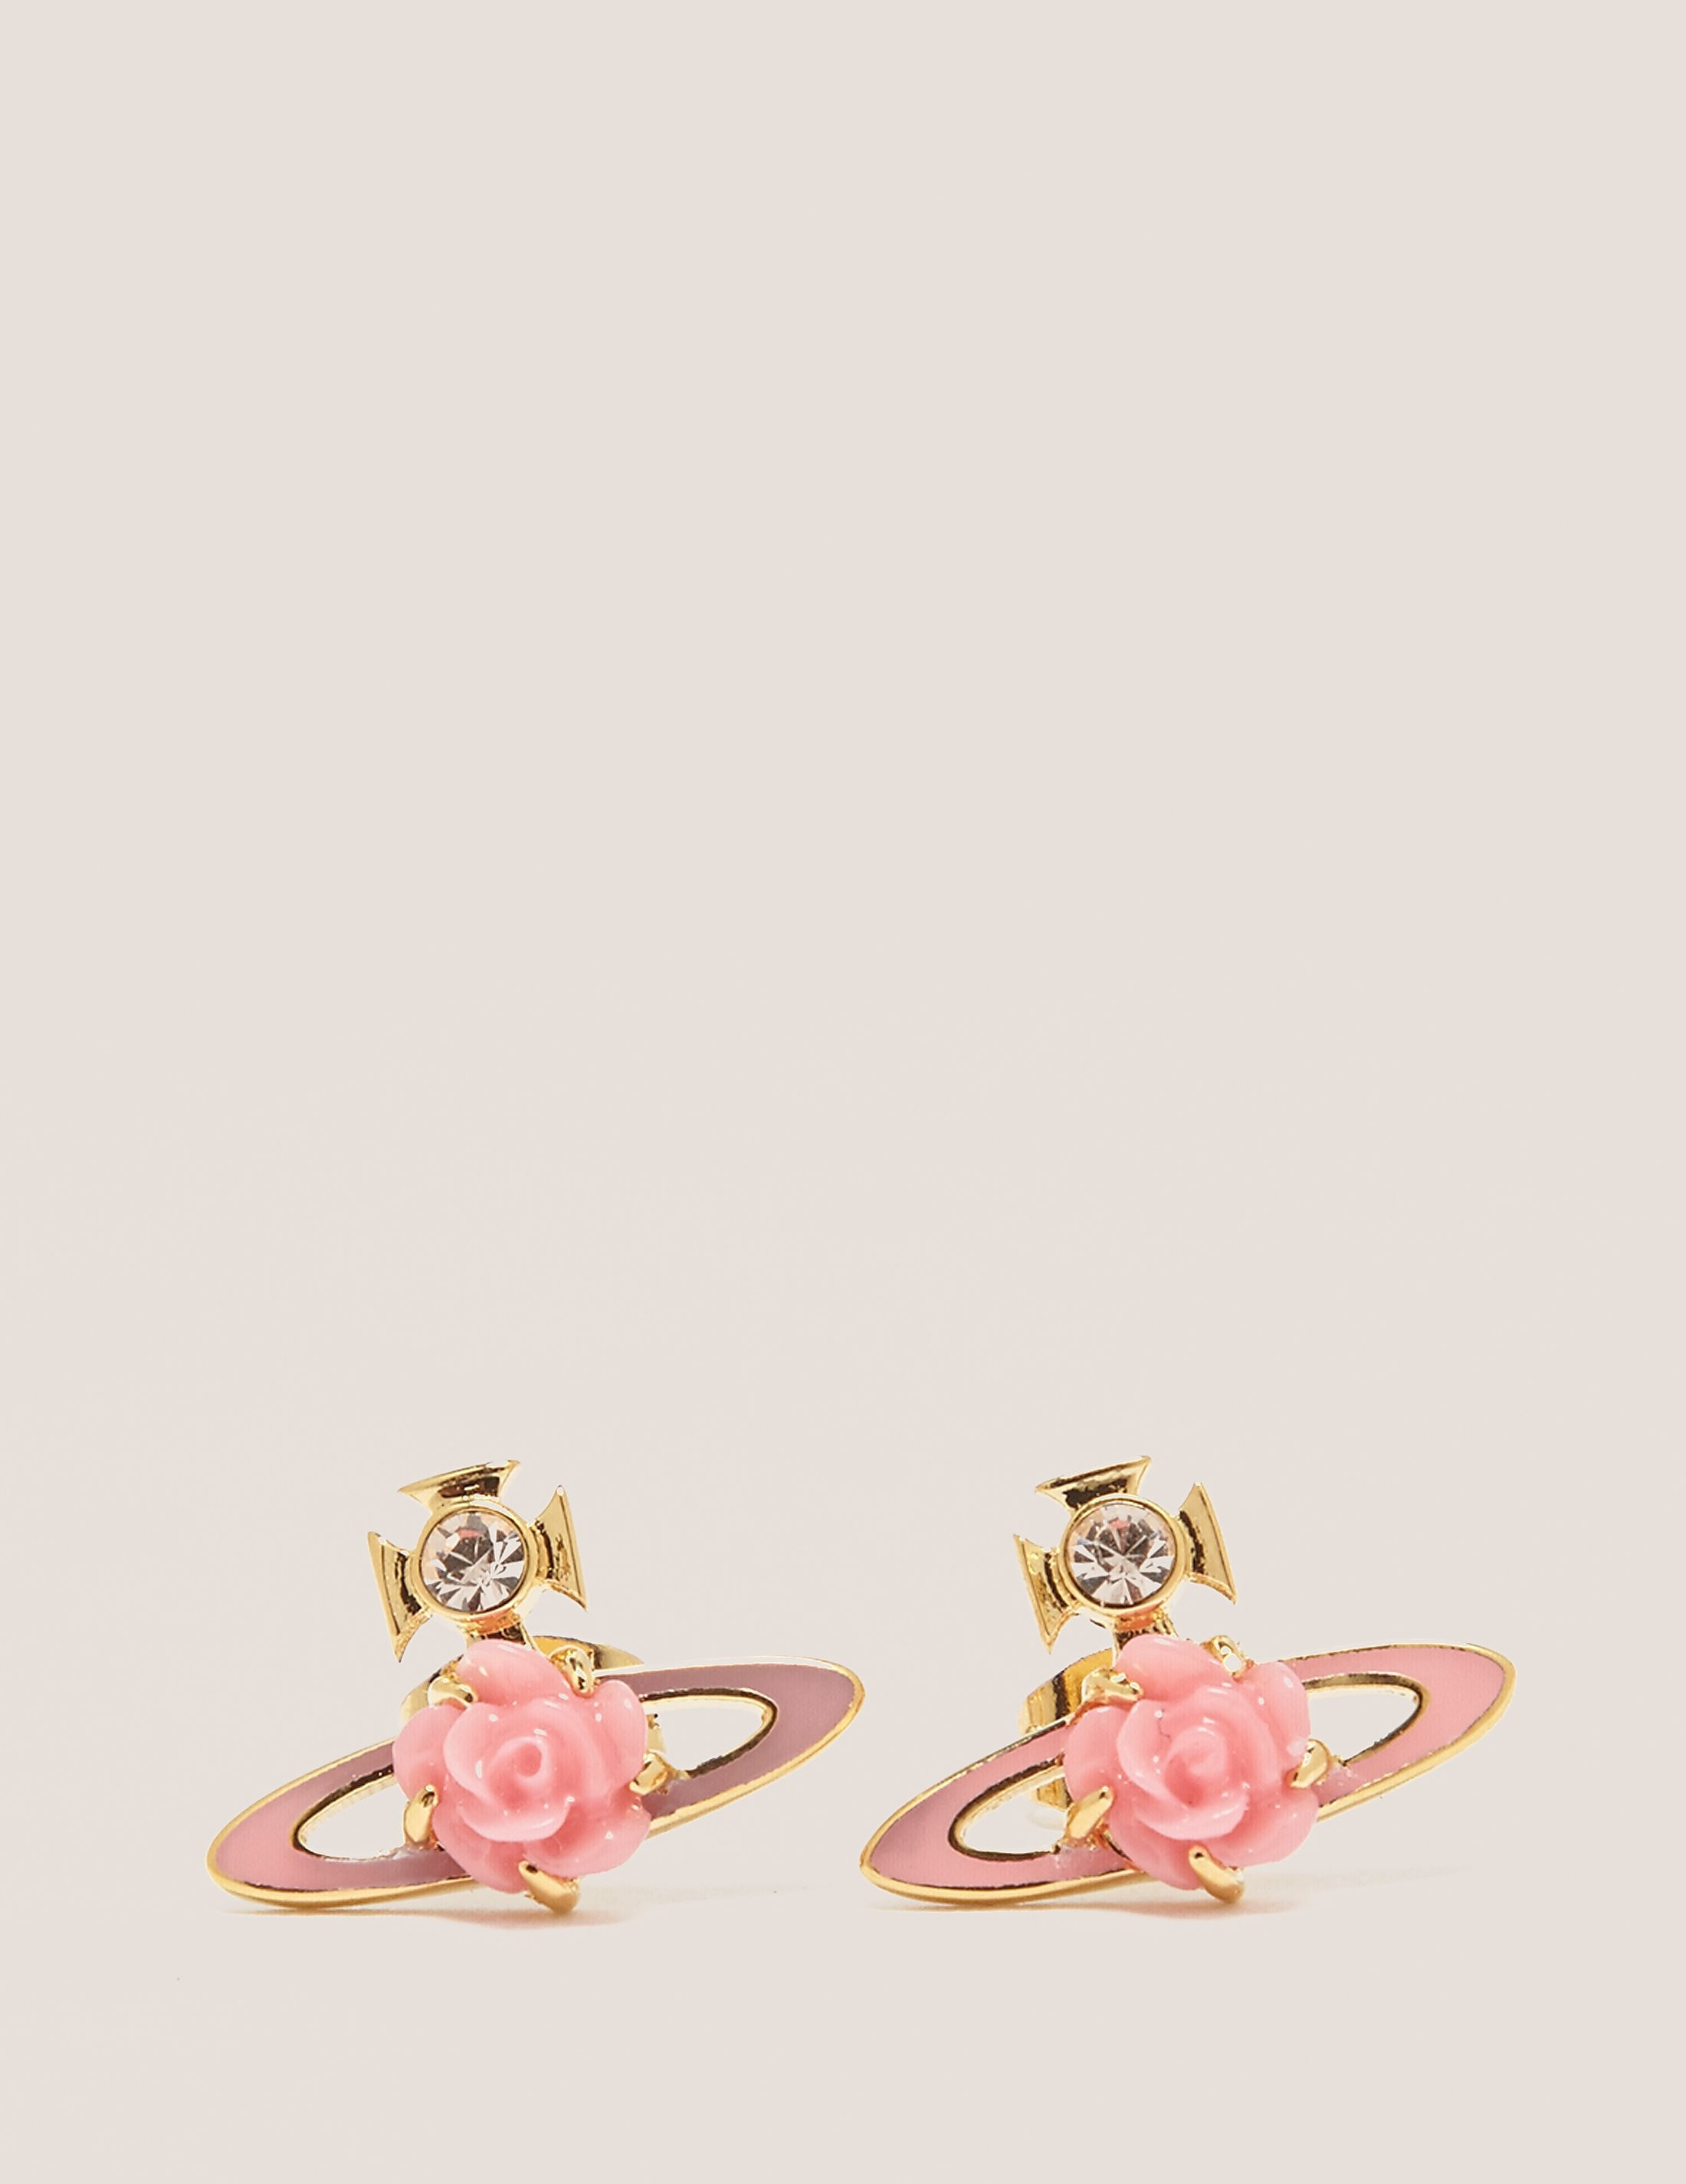 Vivienne Westwood Rose Stud Earrings